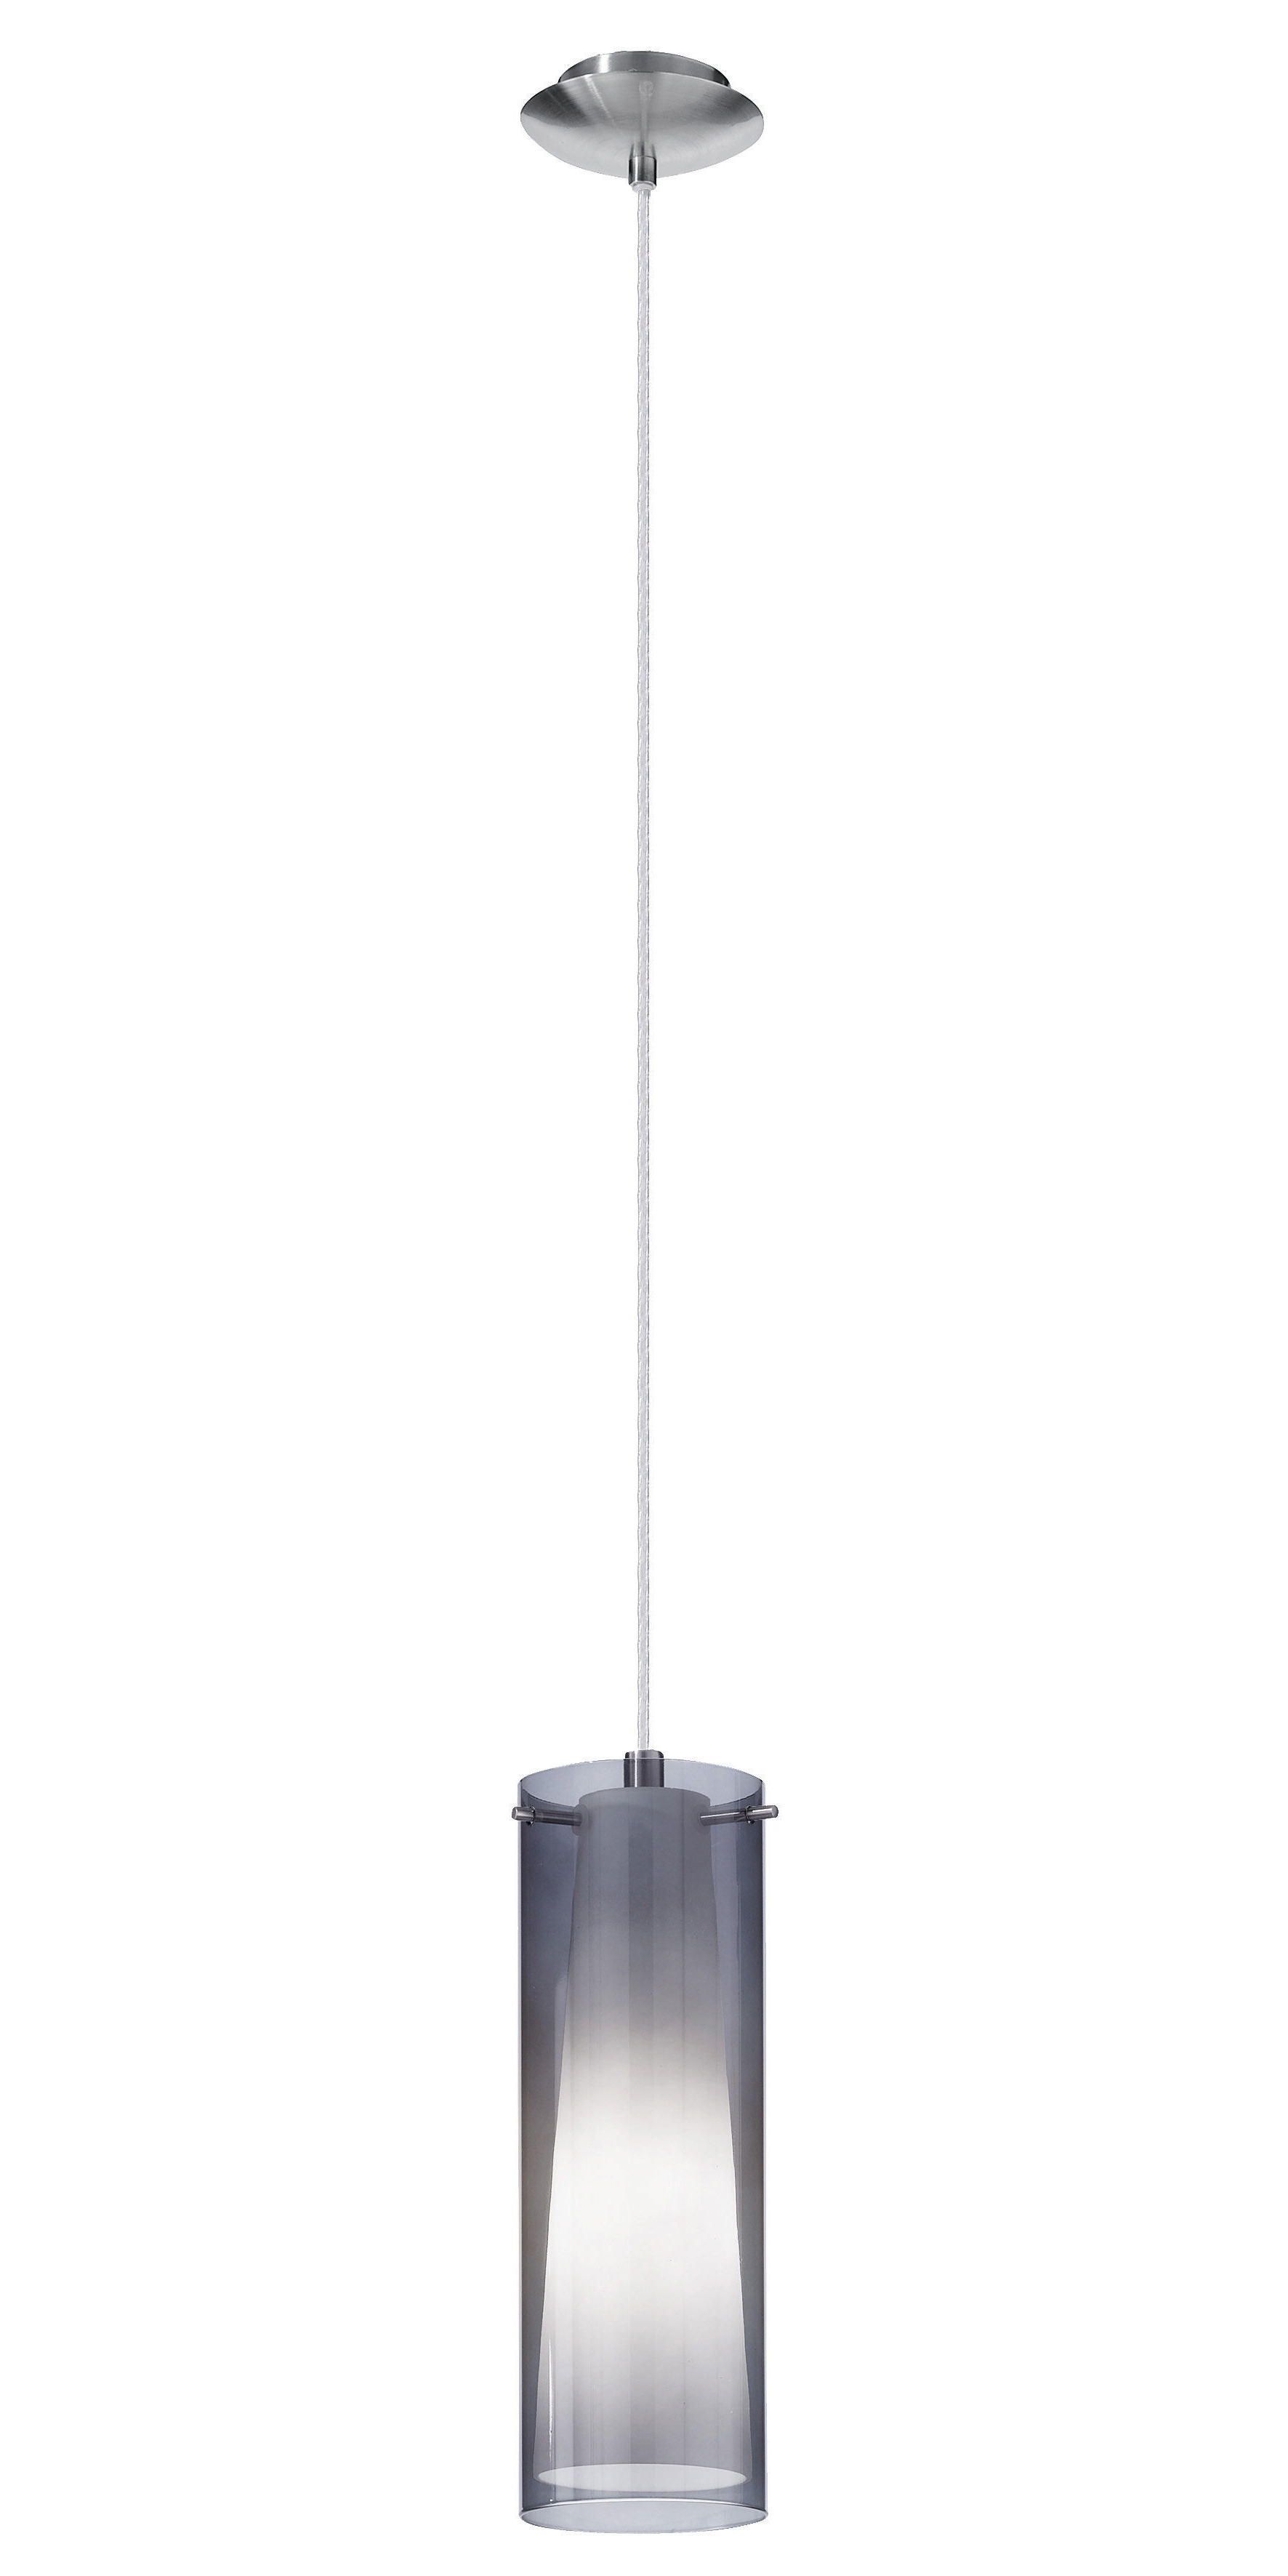 Fashionable Fennia 1 Light Single Cylinder Pendants Intended For Julia 1 Light Single Cylinder Pendant (View 4 of 20)